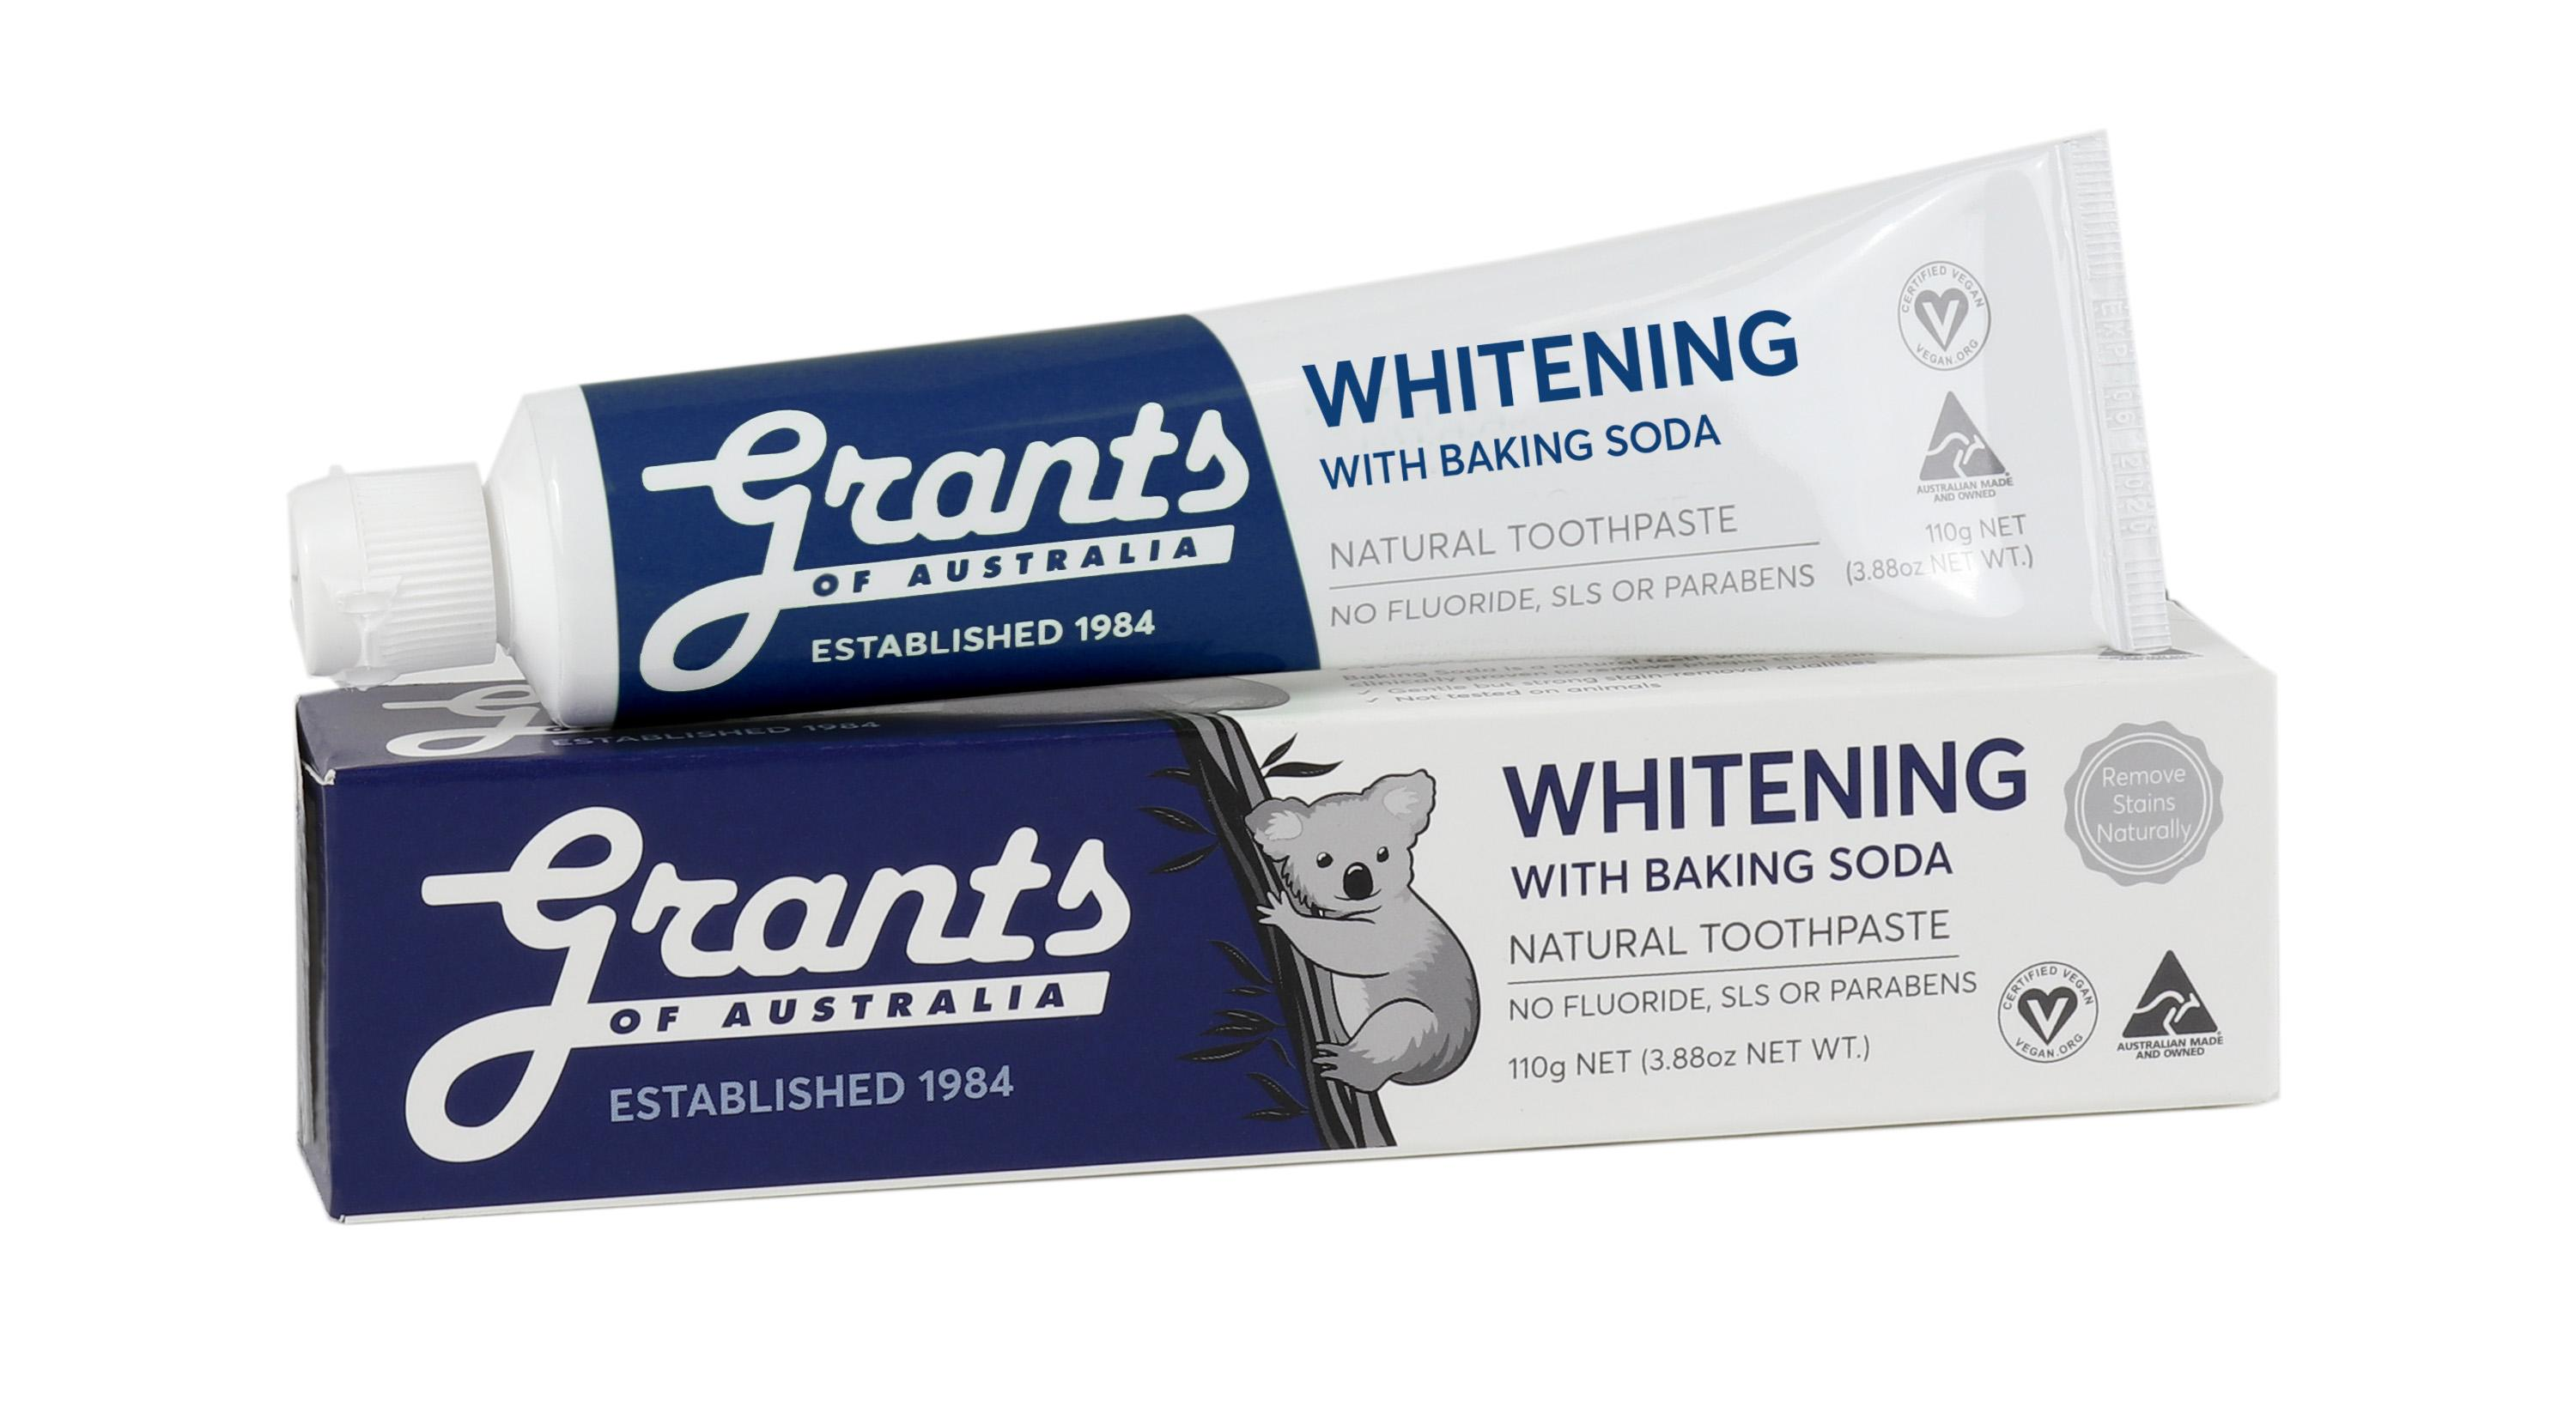 Whitening with Baking Soda Natural Toothpaste 110g